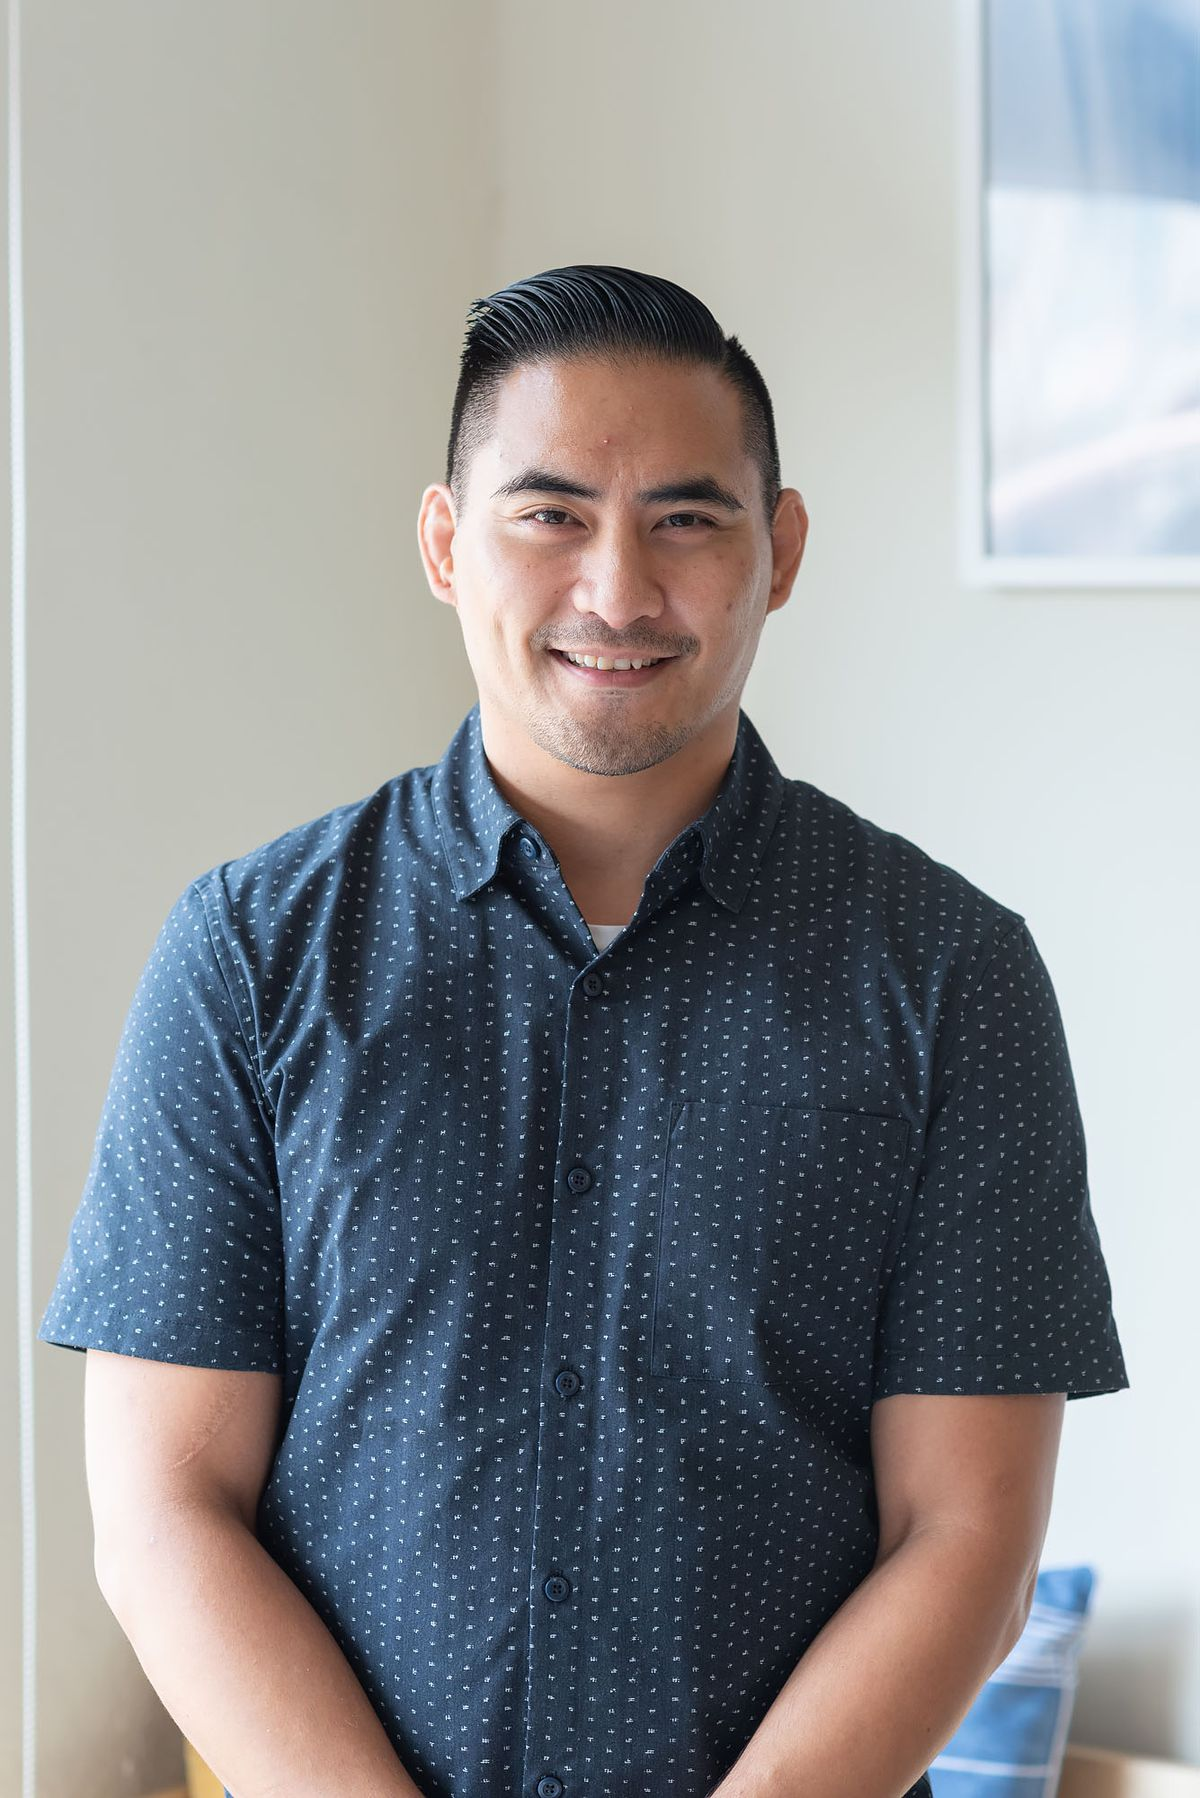 A portrait of chef Joseph Marcos standing in the light and smiling. He wears a blue polka dot shirt.